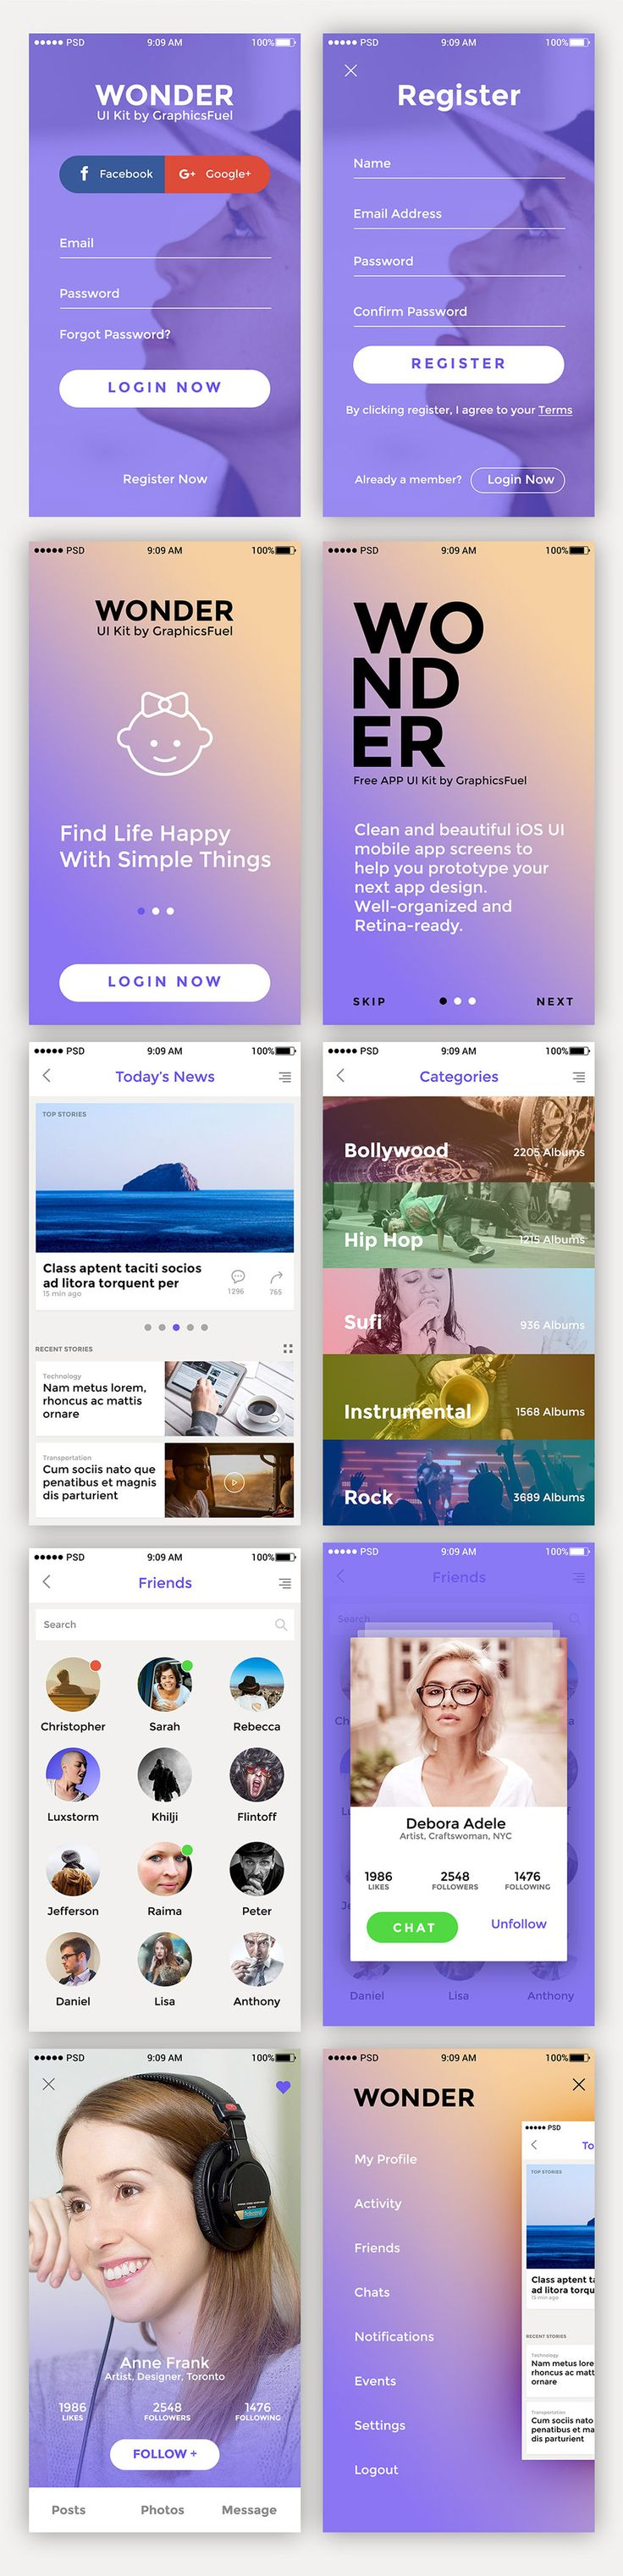 <p>Download 10 Premium App Screen UI Kit Free PSD. Freebie App UI kit containing a pack of 10 premium quality screens to make your app design prototype simple and easy. Each screen is fully editable and customizable, duly named, retina-ready and well-oganized in PSD format. The PSD files are neatly organized and the screens are categorized as sign-in and sign-up, walkthrough, news, categories, profiles, friends, and menu. Hope you like it. Enjoy!</p>